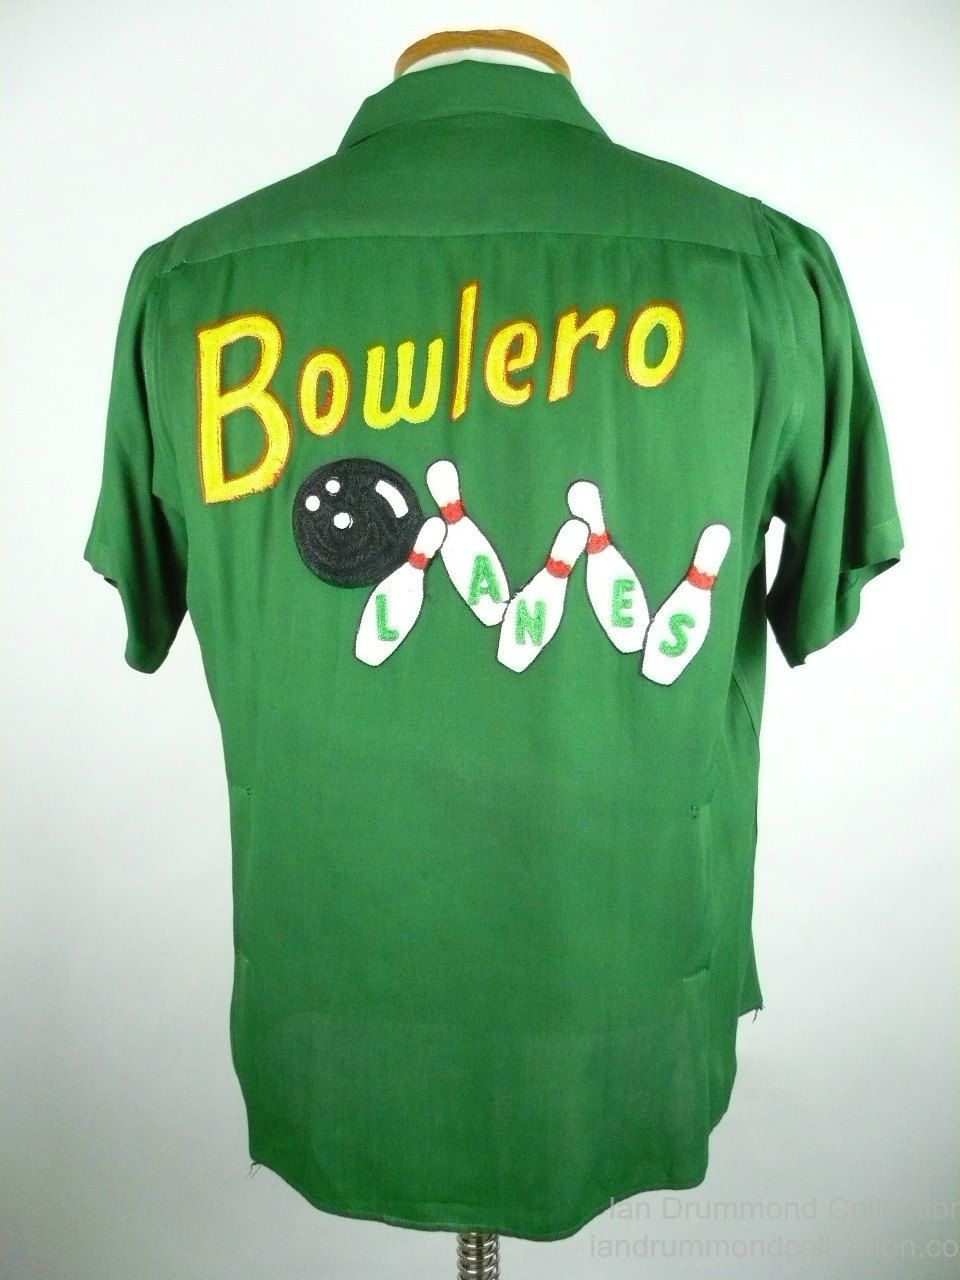 8001d28f Vintage 1950s Bowling Shirt, King Louie, Green Rayon Gabardine, Embroidered  Ball and Pins, Bowlero, Ken, Size M by idcmasculine on Etsy